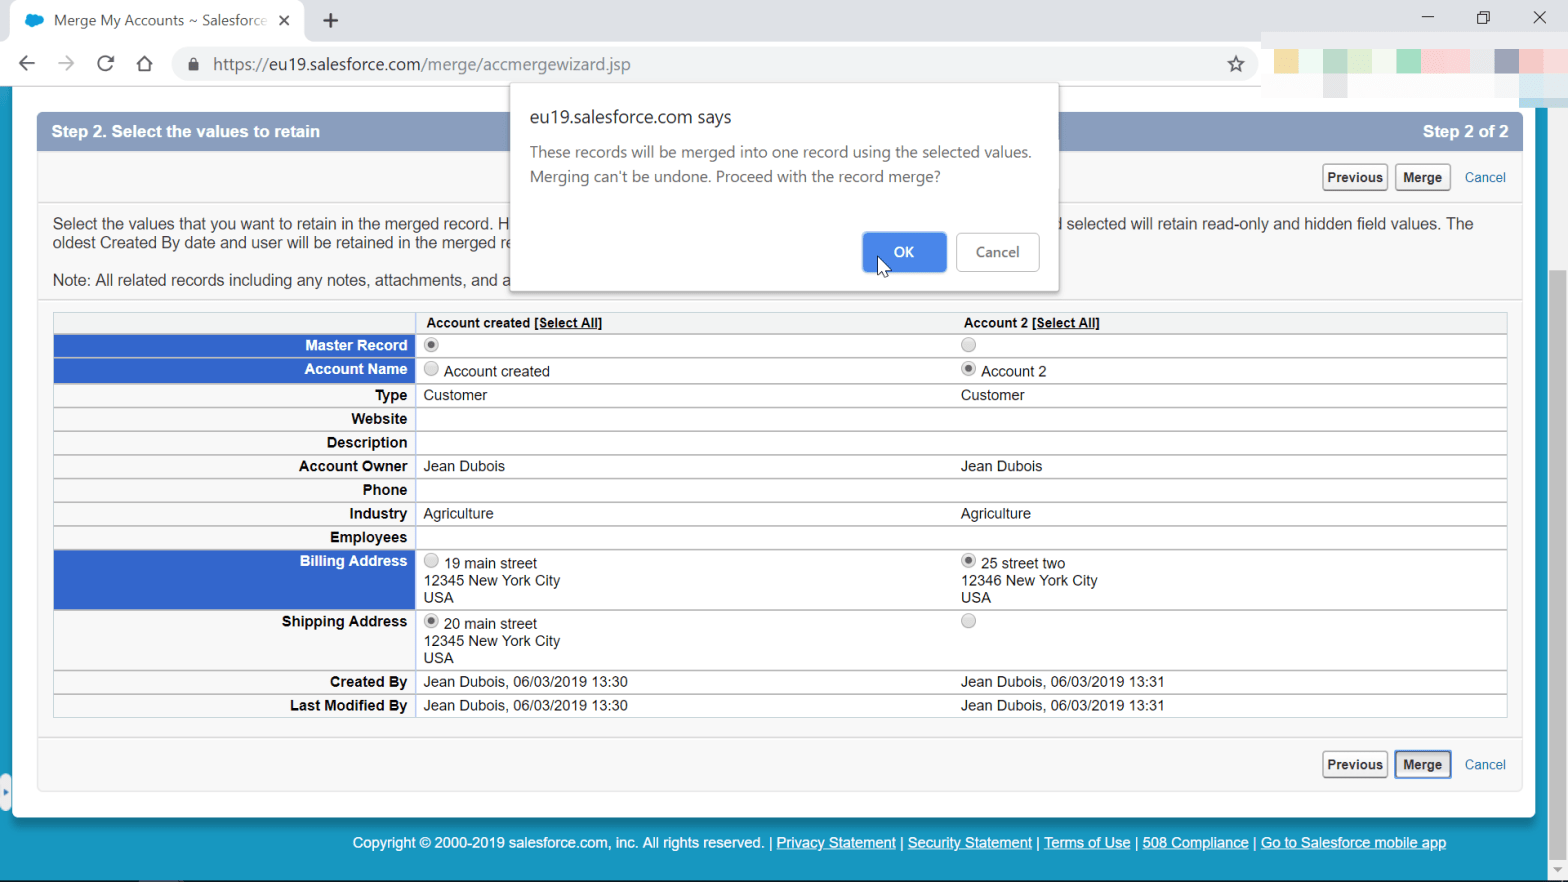 How to merge accounts in SalesForce Classic?